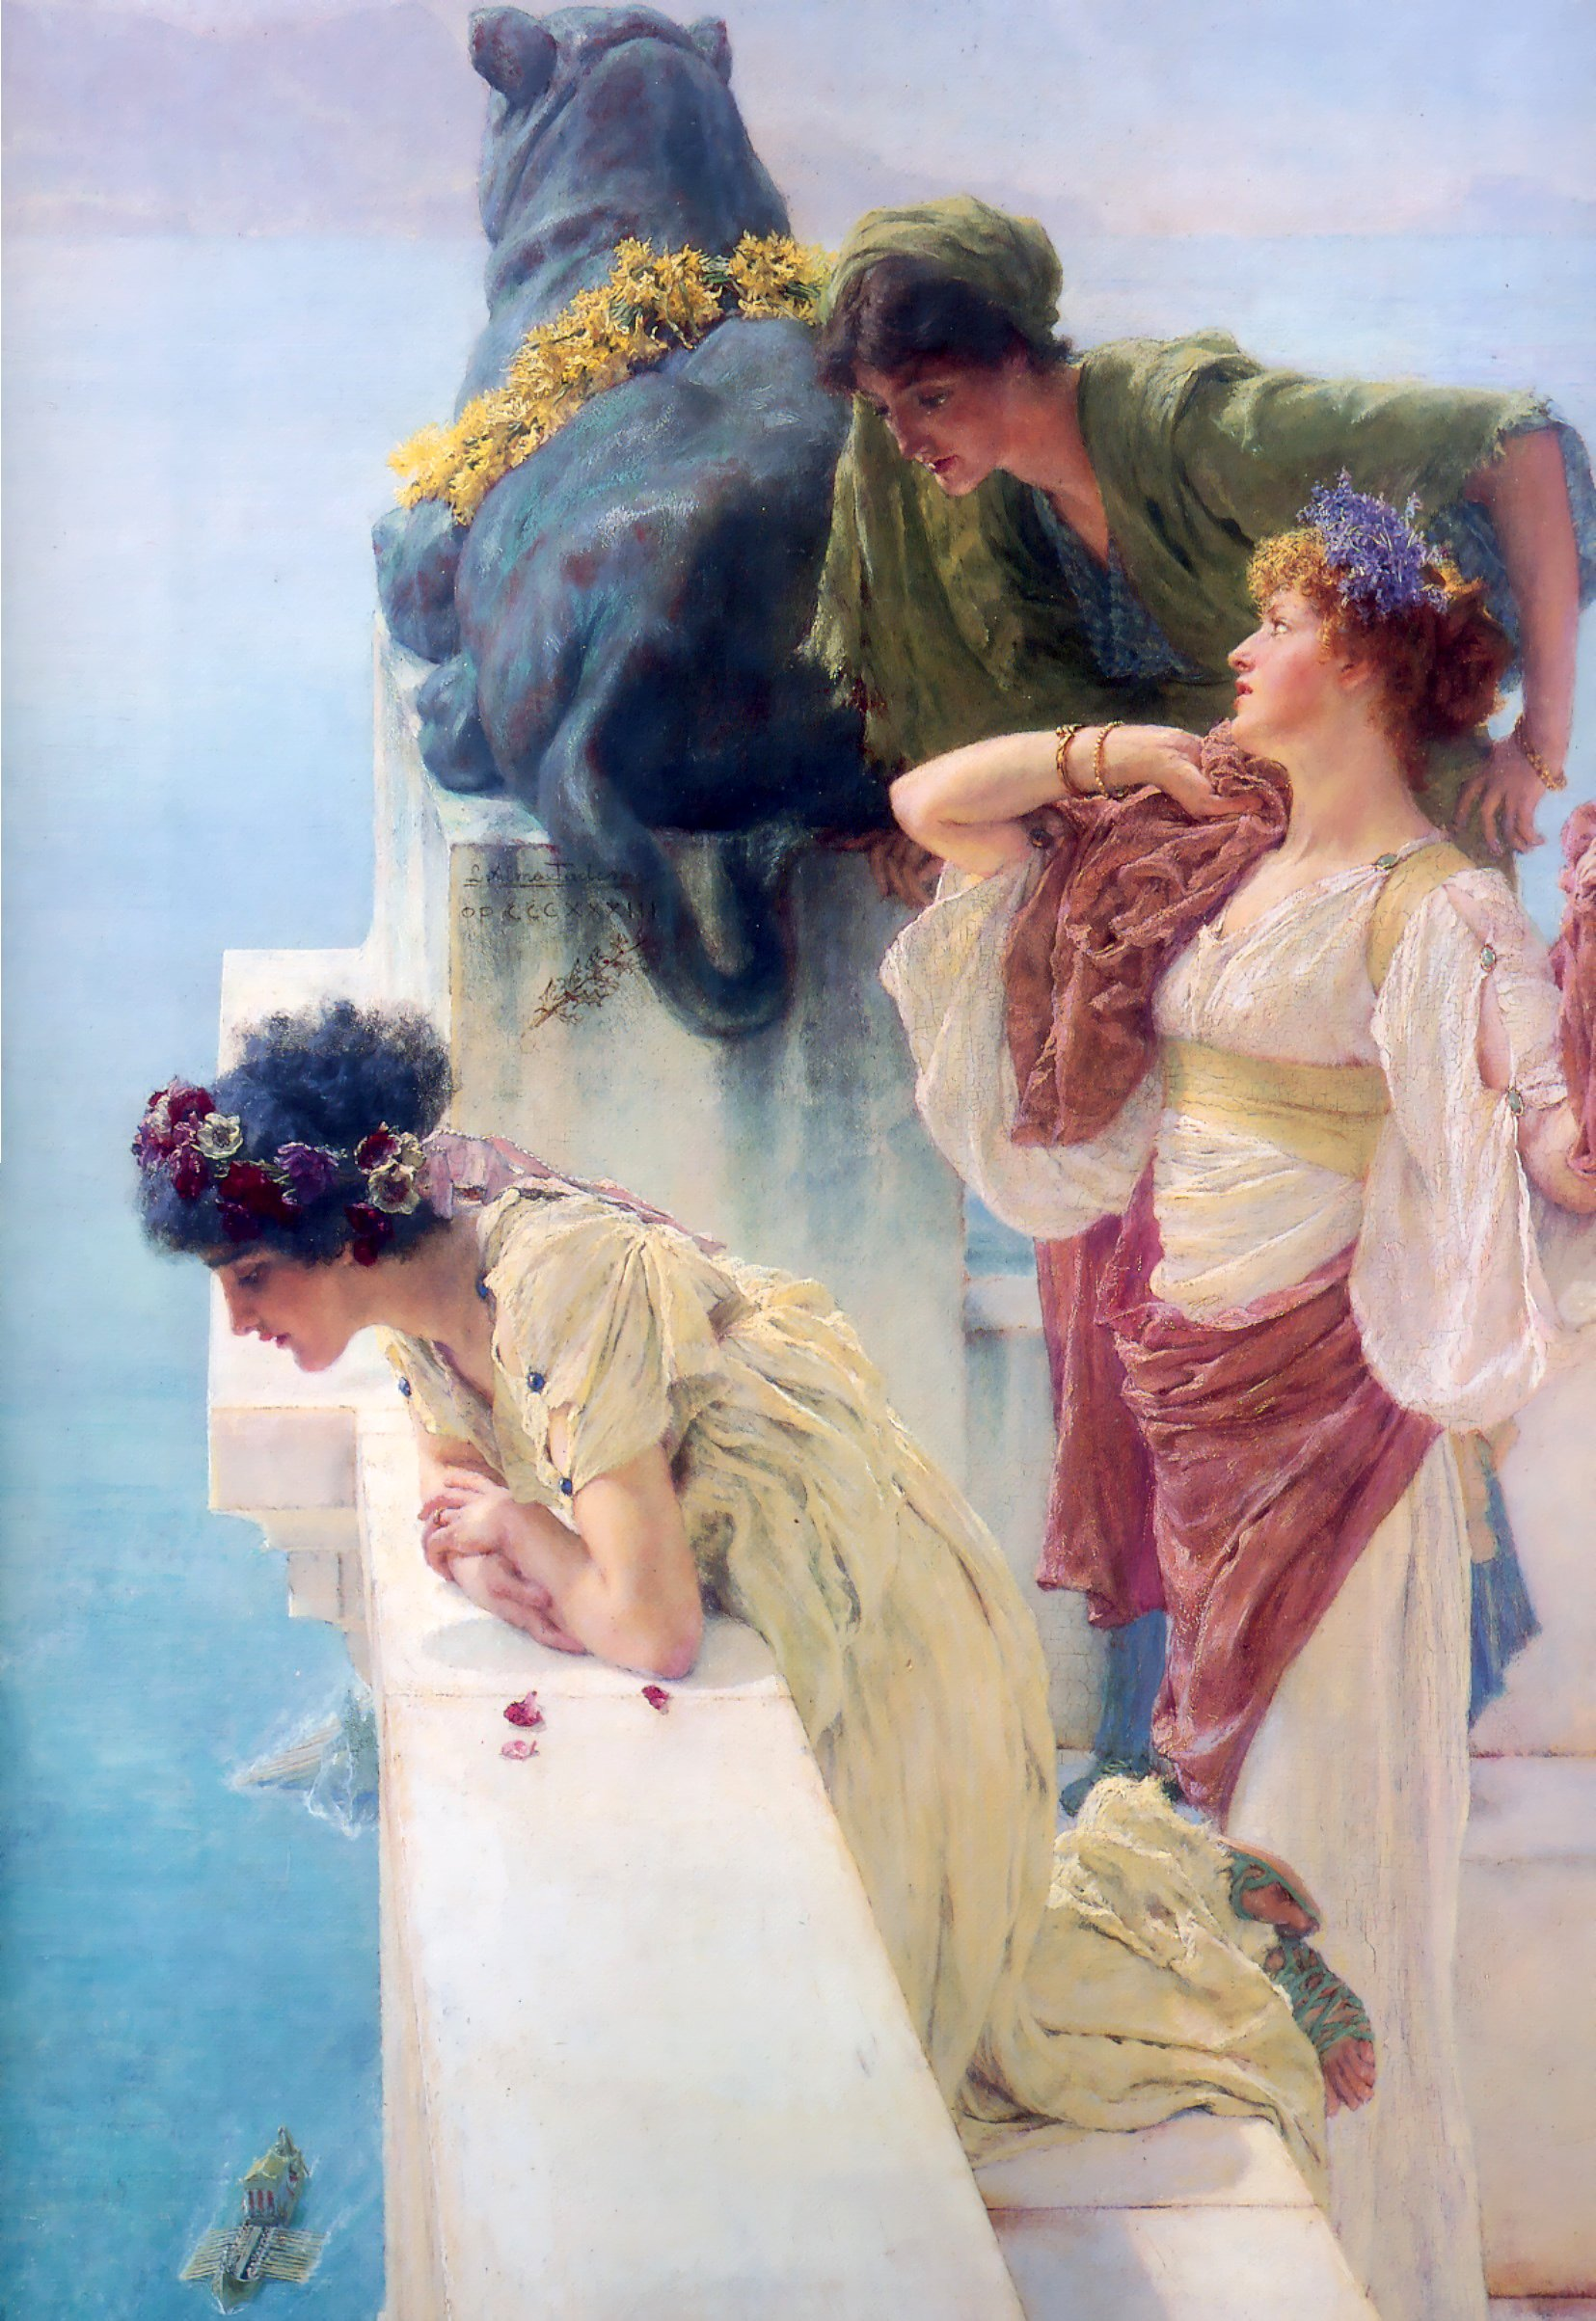 http://uploads5.wikipaintings.org/images/alma-tadema-lawrence/a-coign-of-vantage-1895.jpg